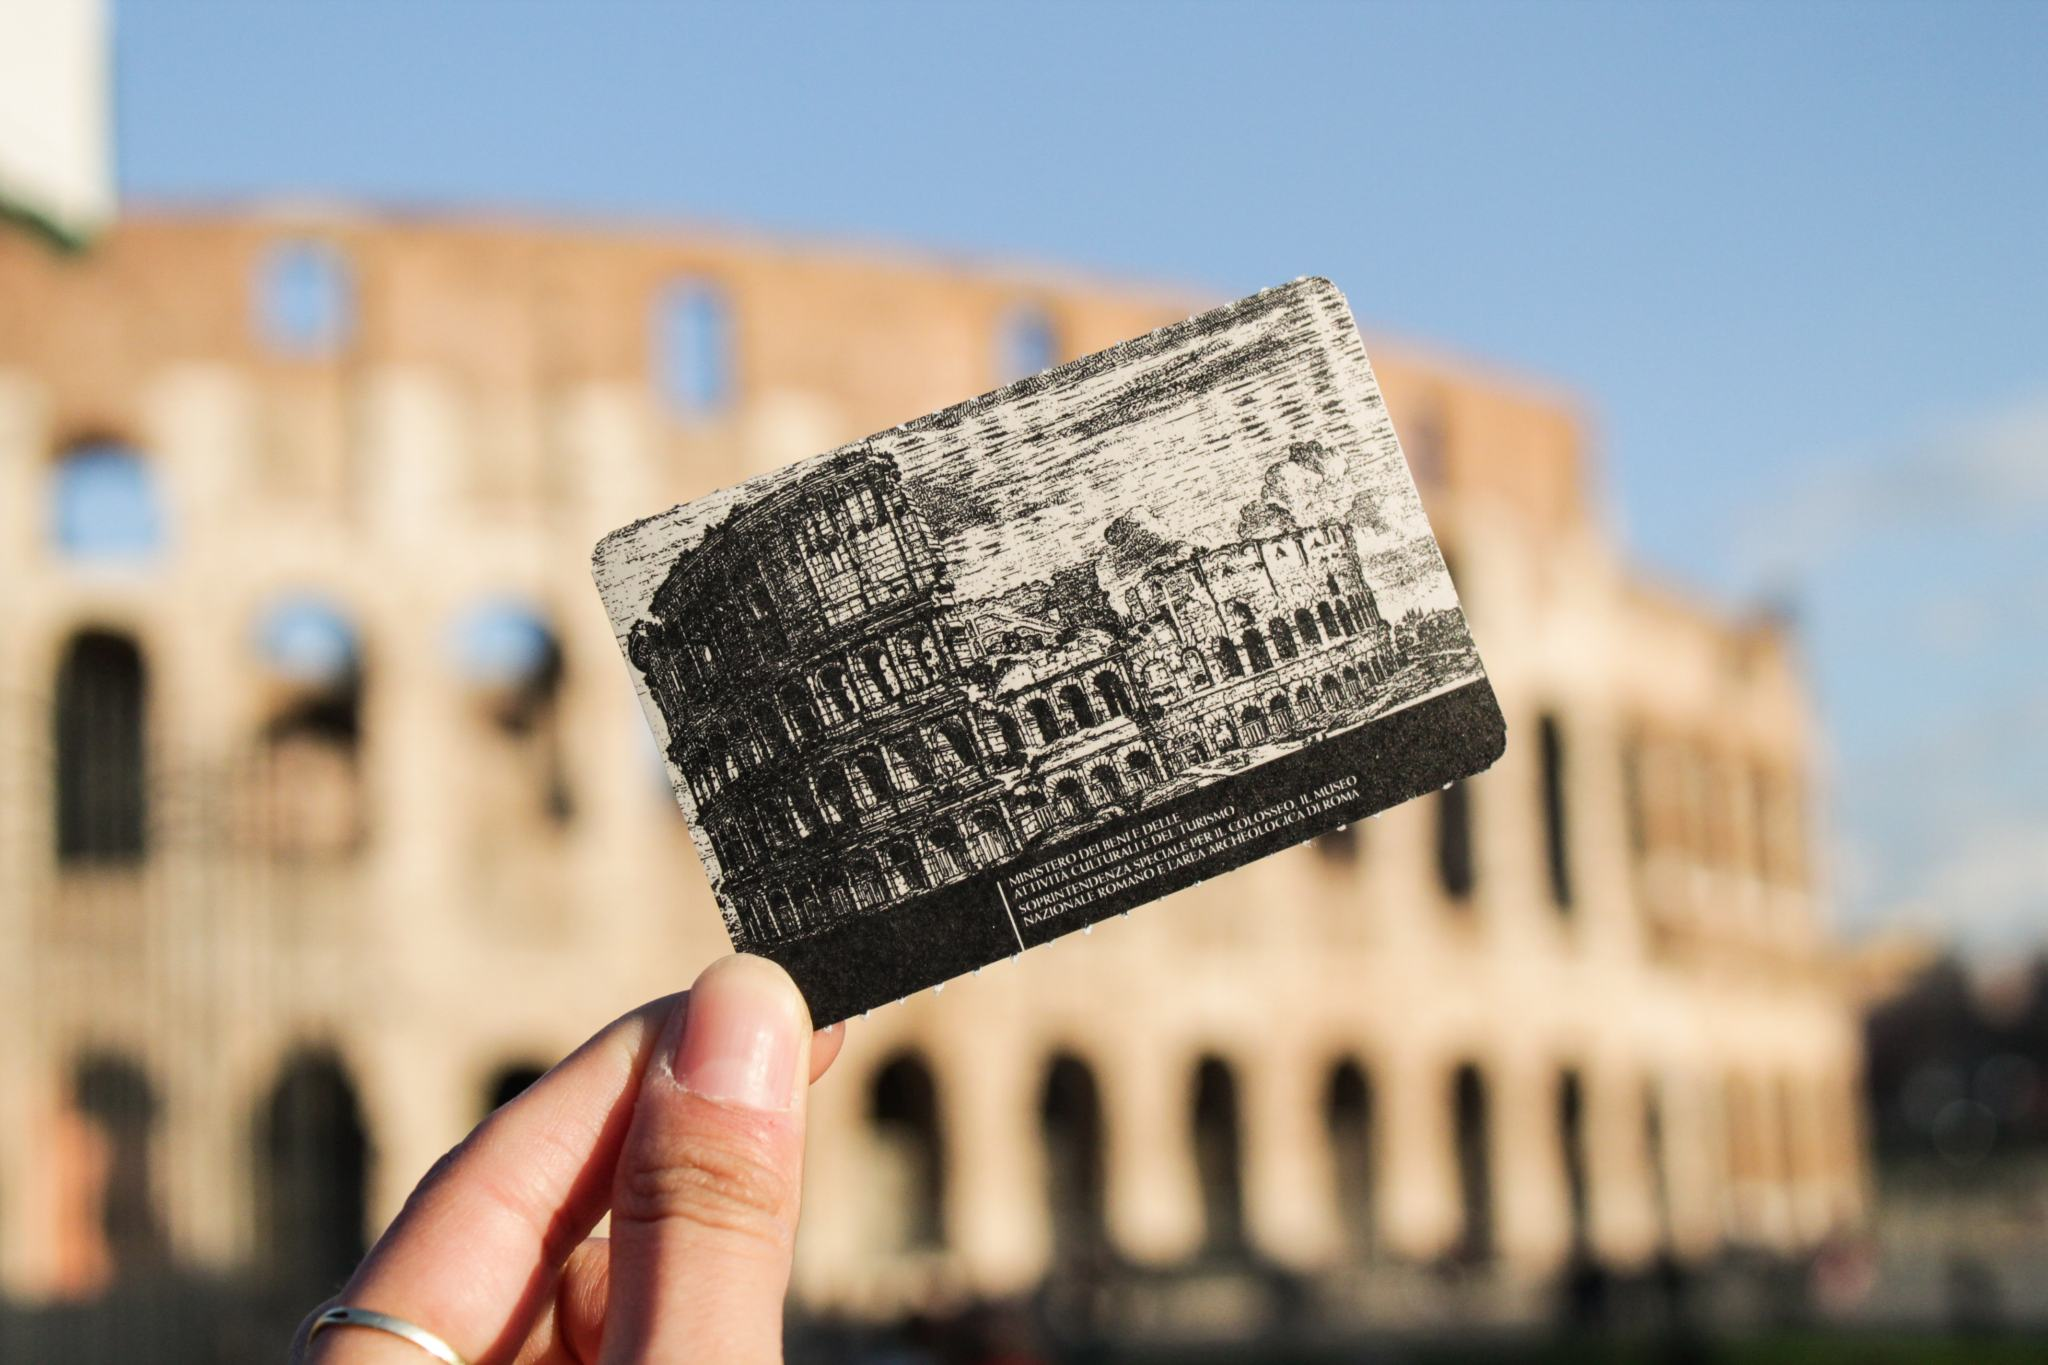 skip the line tickets for the colosseum with hand holding ticket in front of the rome monument